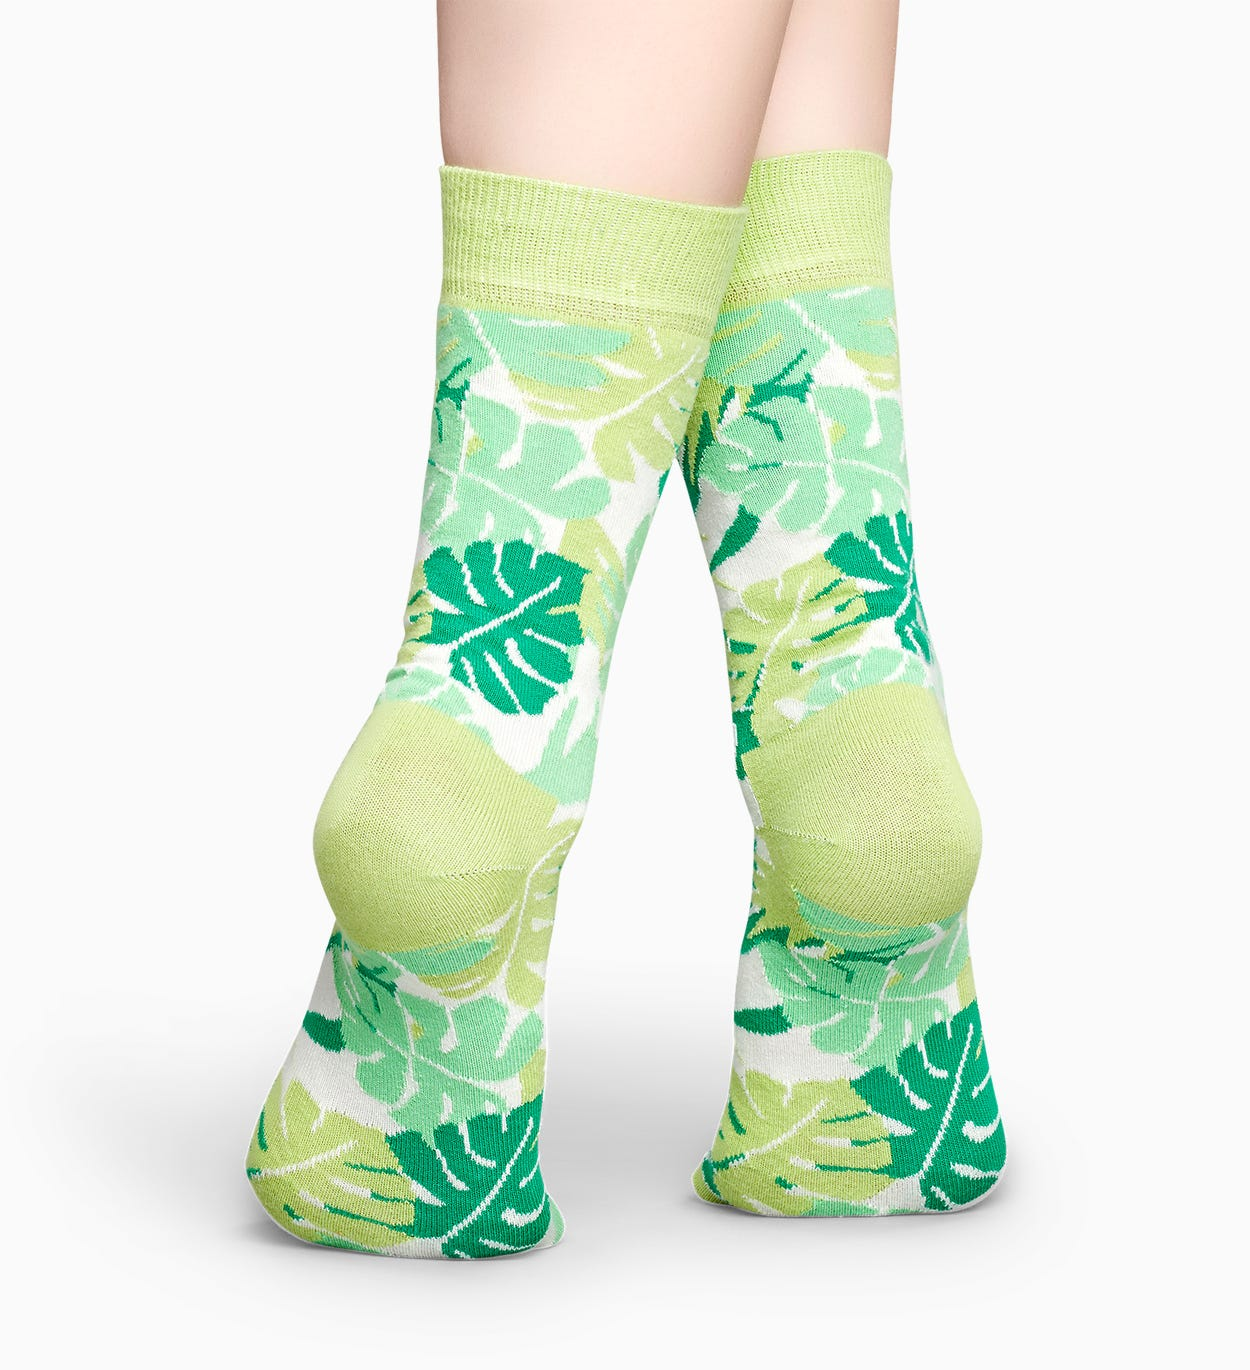 Grüne Blätter Socken: Leaves | Happy Socks